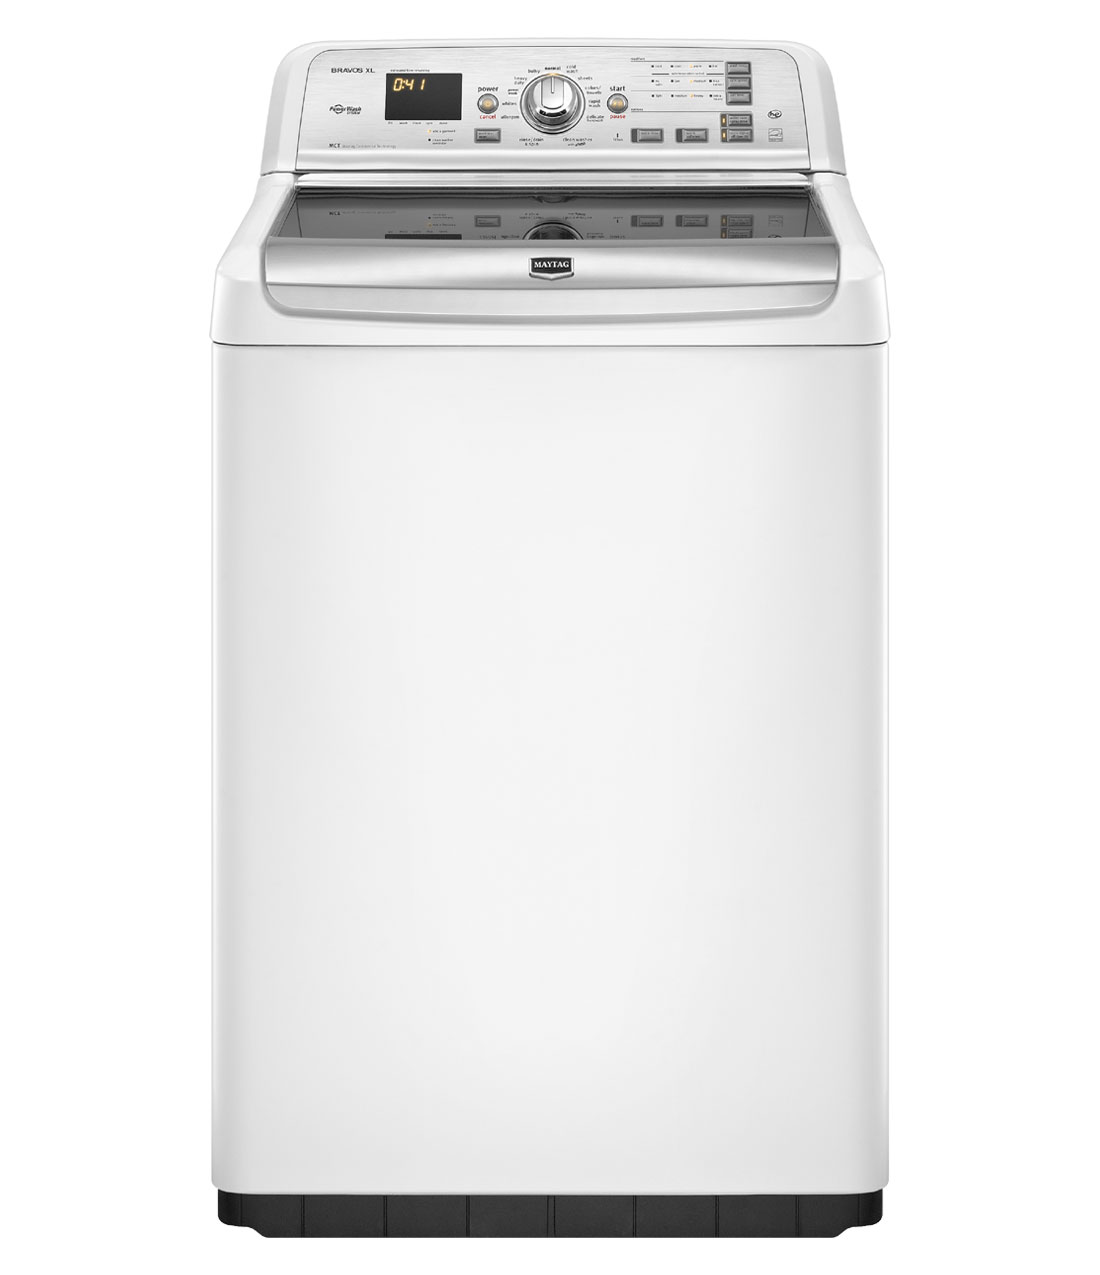 Maytag Bravos XL 4.6 cu. ft. High-Efficiency Top Load Washer in White (Model: MVWB850YW)